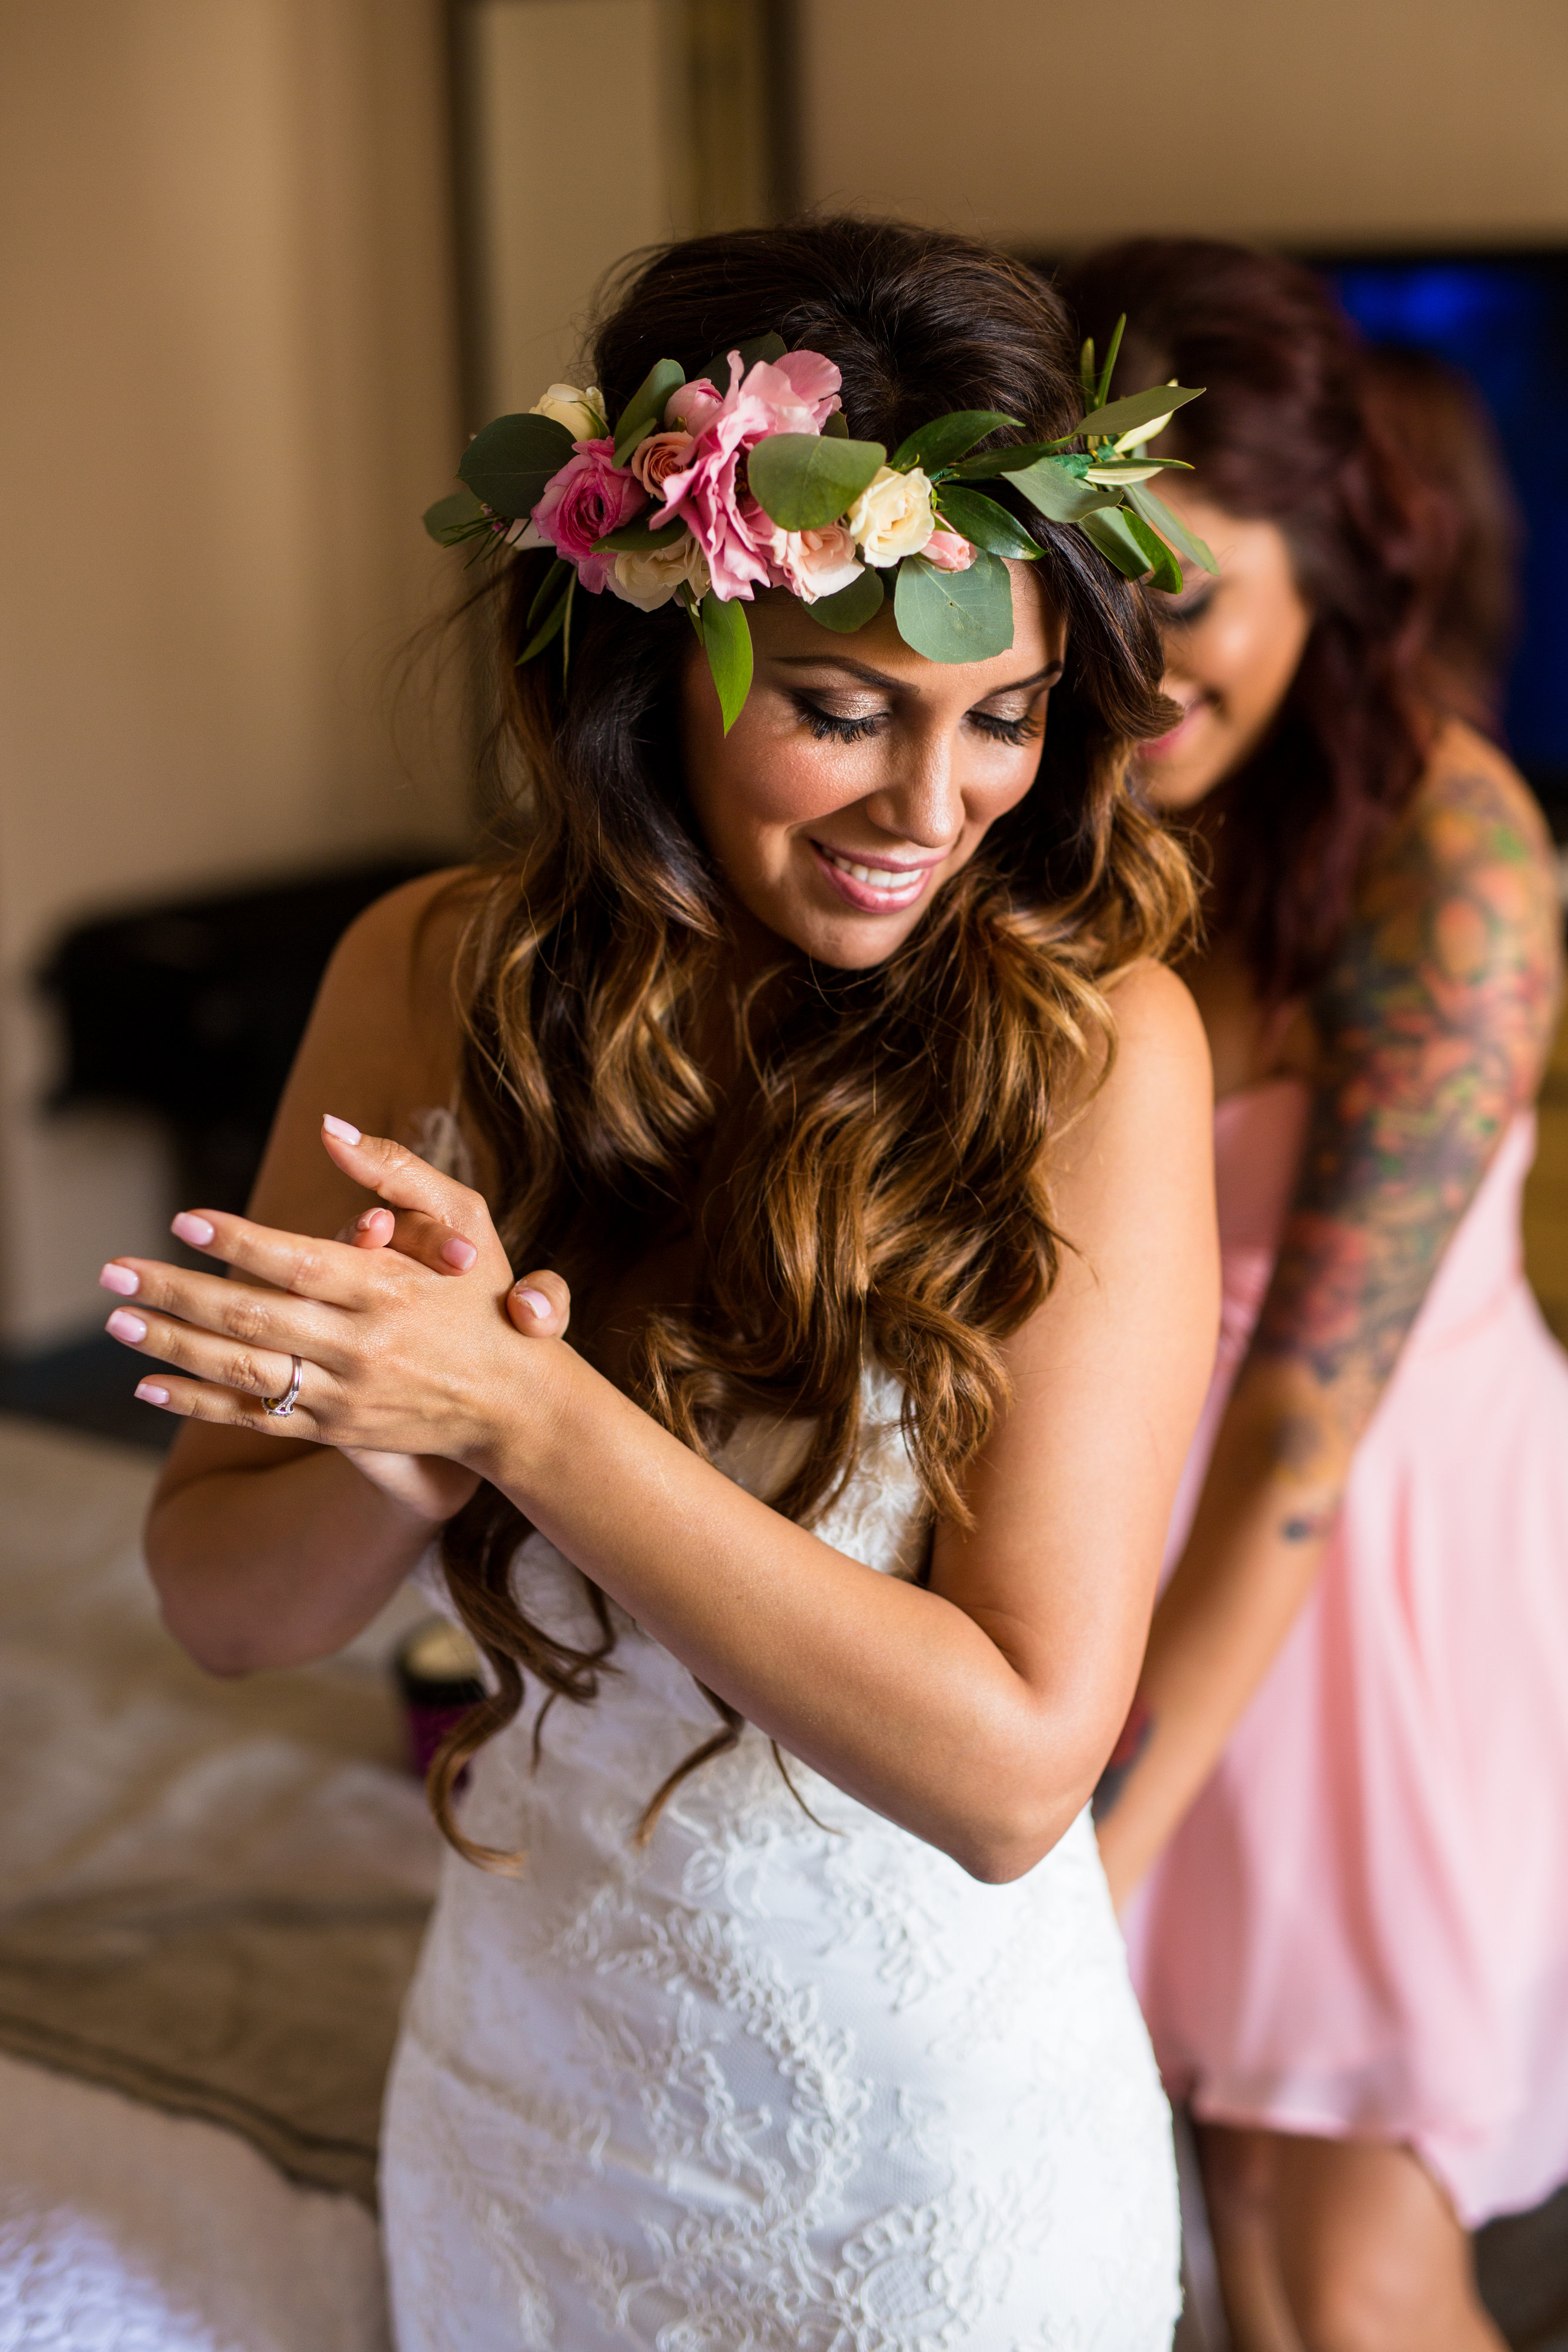 bride with flower crown getting ready